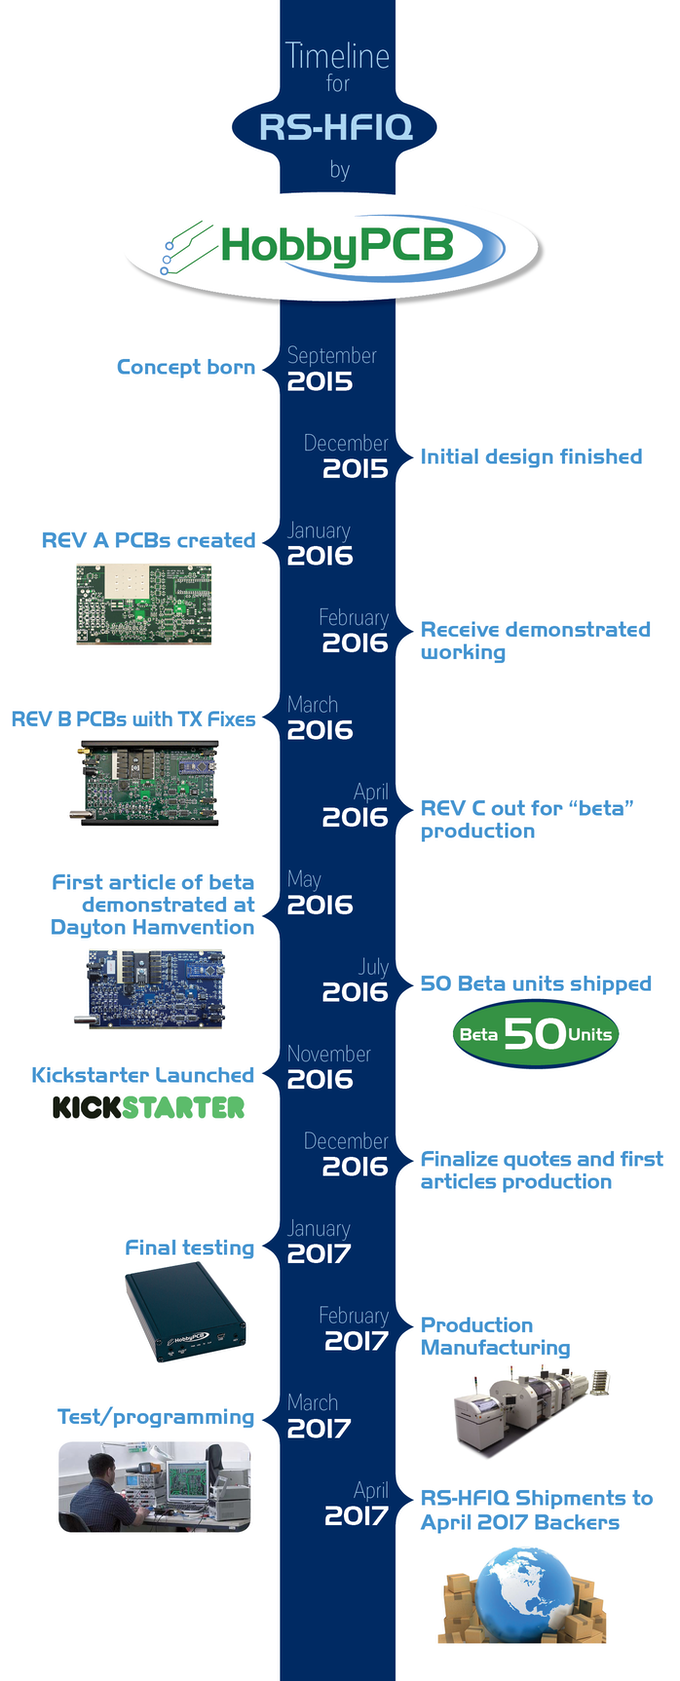 Rs Hfiq 5w Software Defined Radio Sdr Tranceiver By Hobbypcb Llc Simple Shortwave Transmitter Eeweb Community Repairs And User Support This Campaign Is To Help Us With A Sizable Production Run Which Will Allow Meet The Anticipated Demand For An